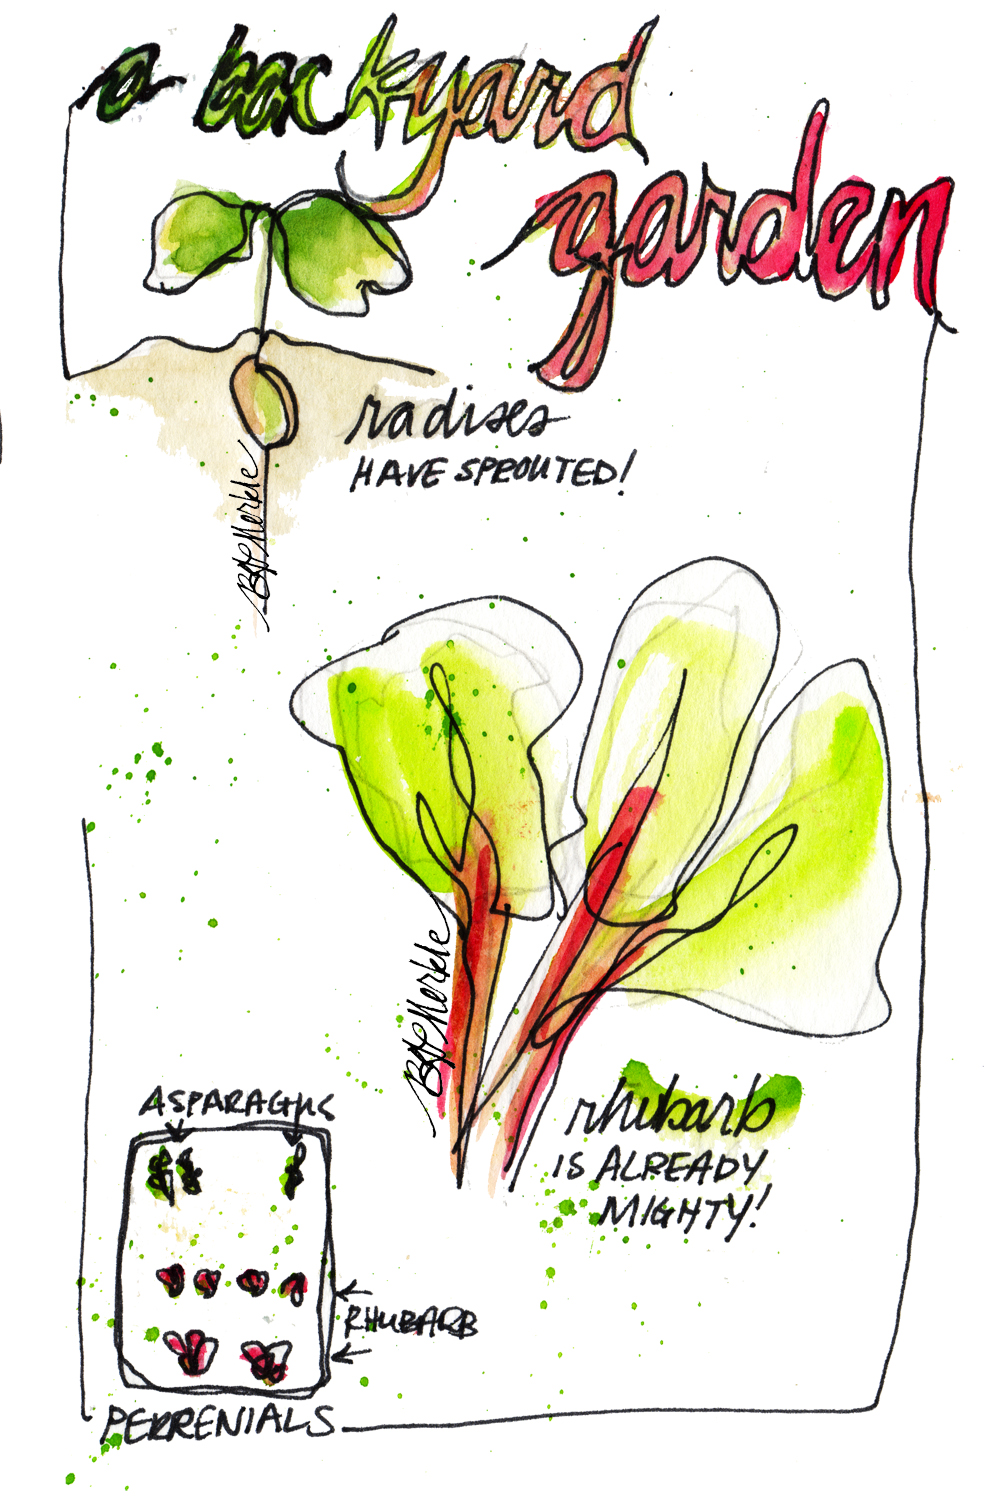 Sketch of plants in garden_Illustration by Bethann Garramon Merkle, copyright 2015